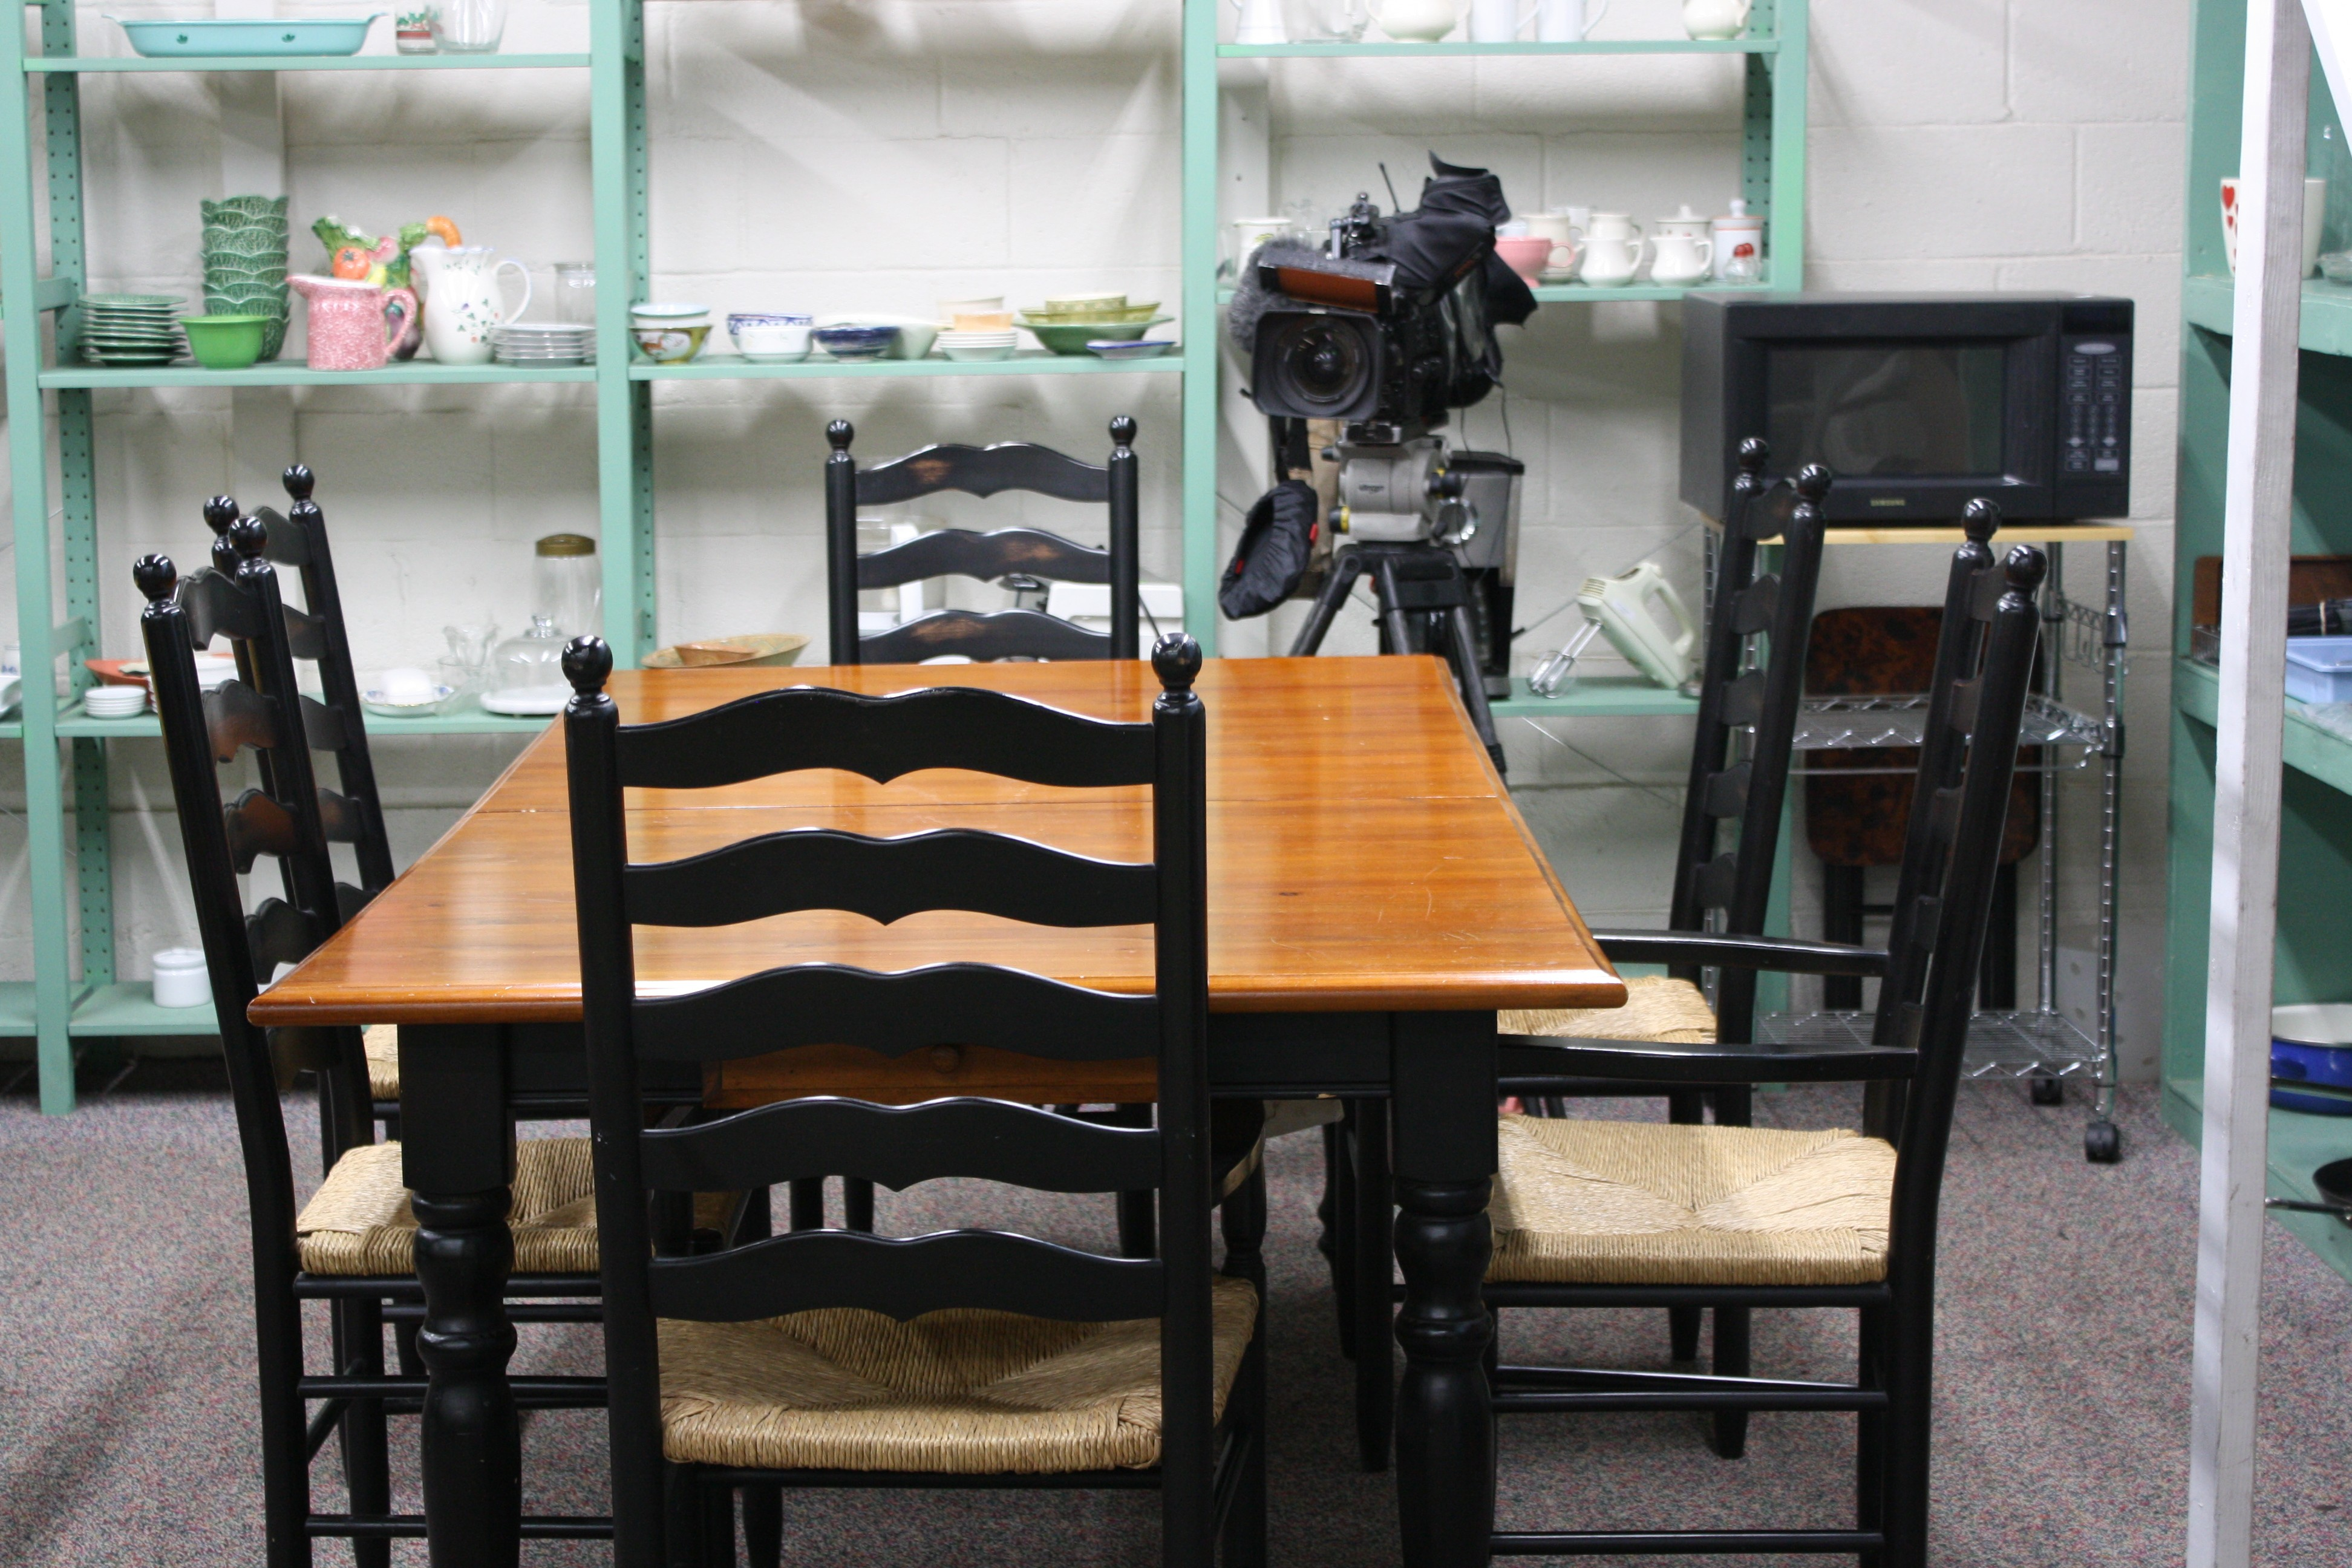 Donate Dining Room Set Before You Decide To Donate Give Us A Call You May Have A Diamond In The